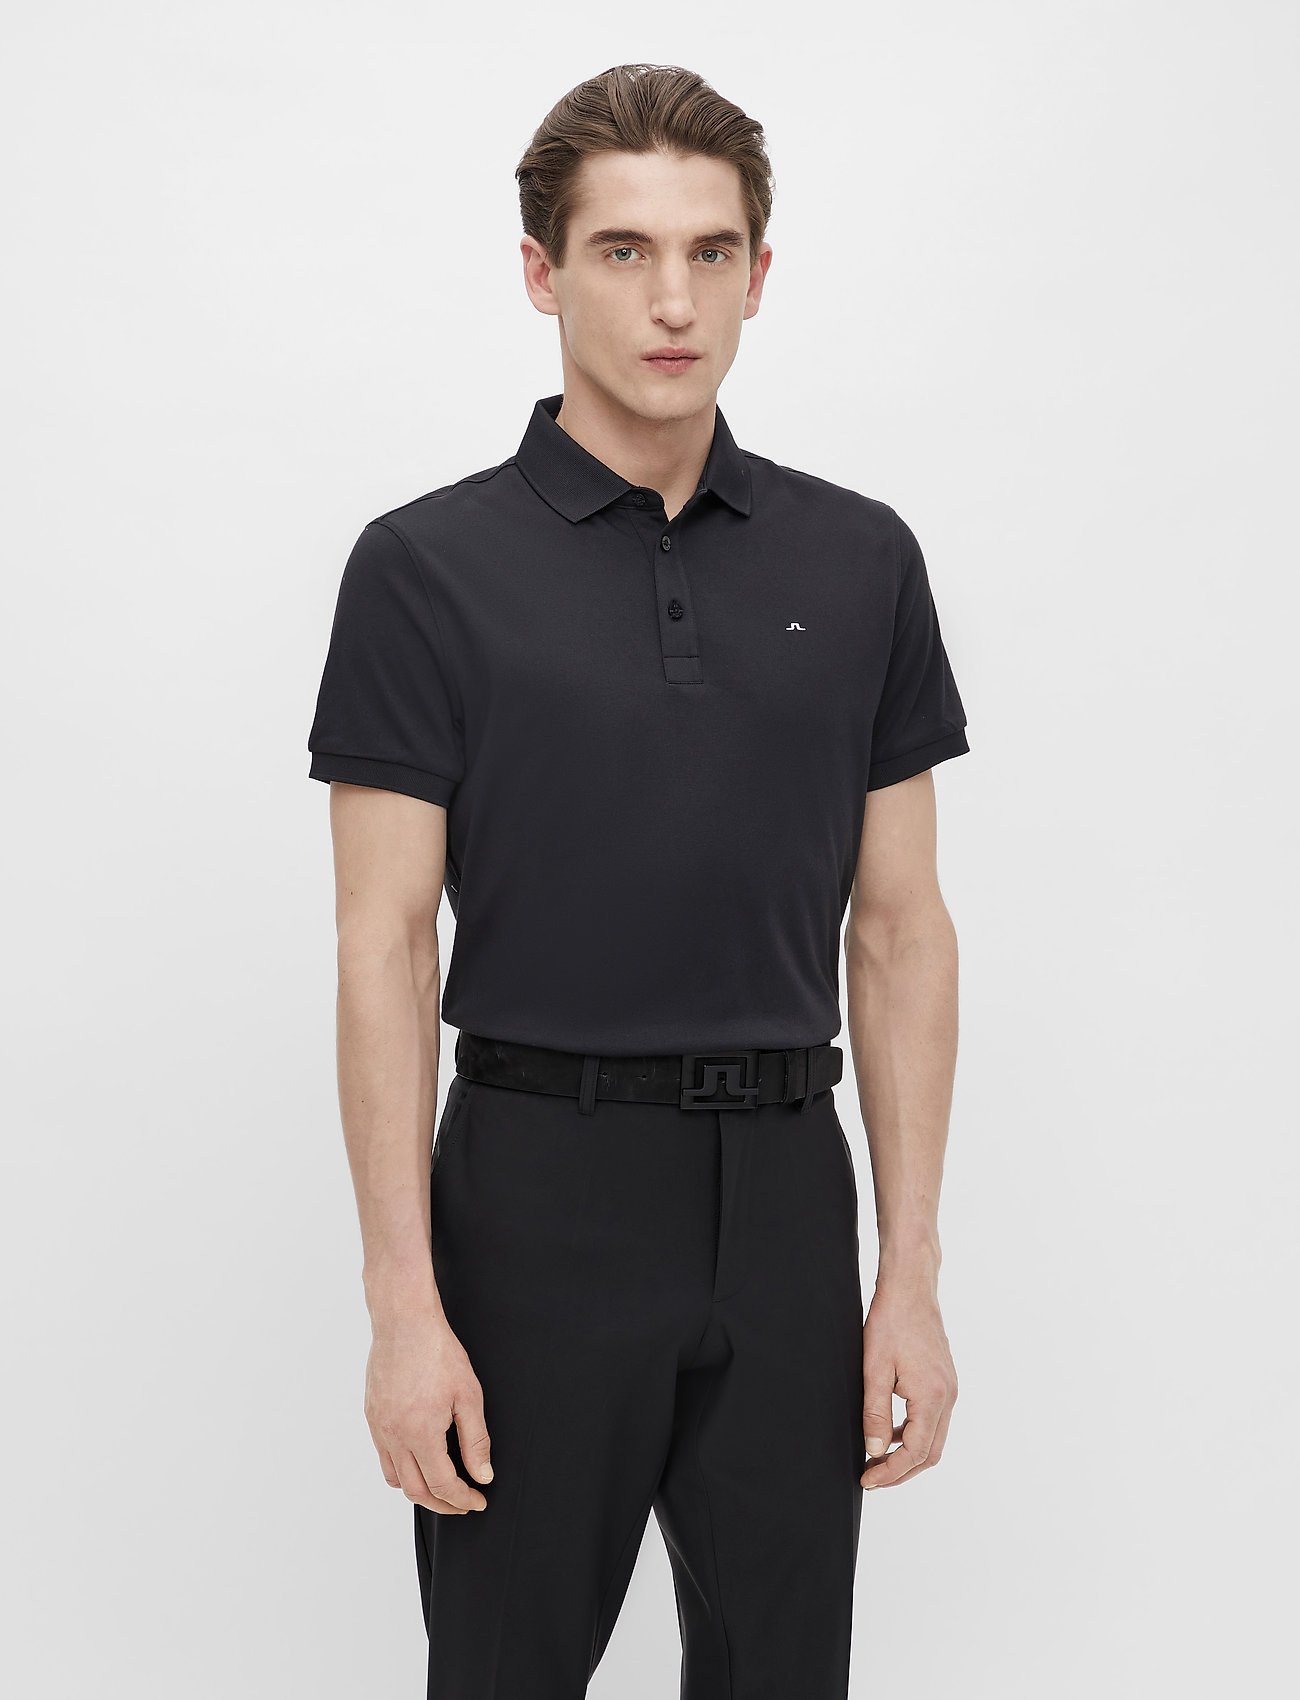 J. Lindeberg Golf - Stan Regular Fit Golf Polo - kurzärmelig - black - 0